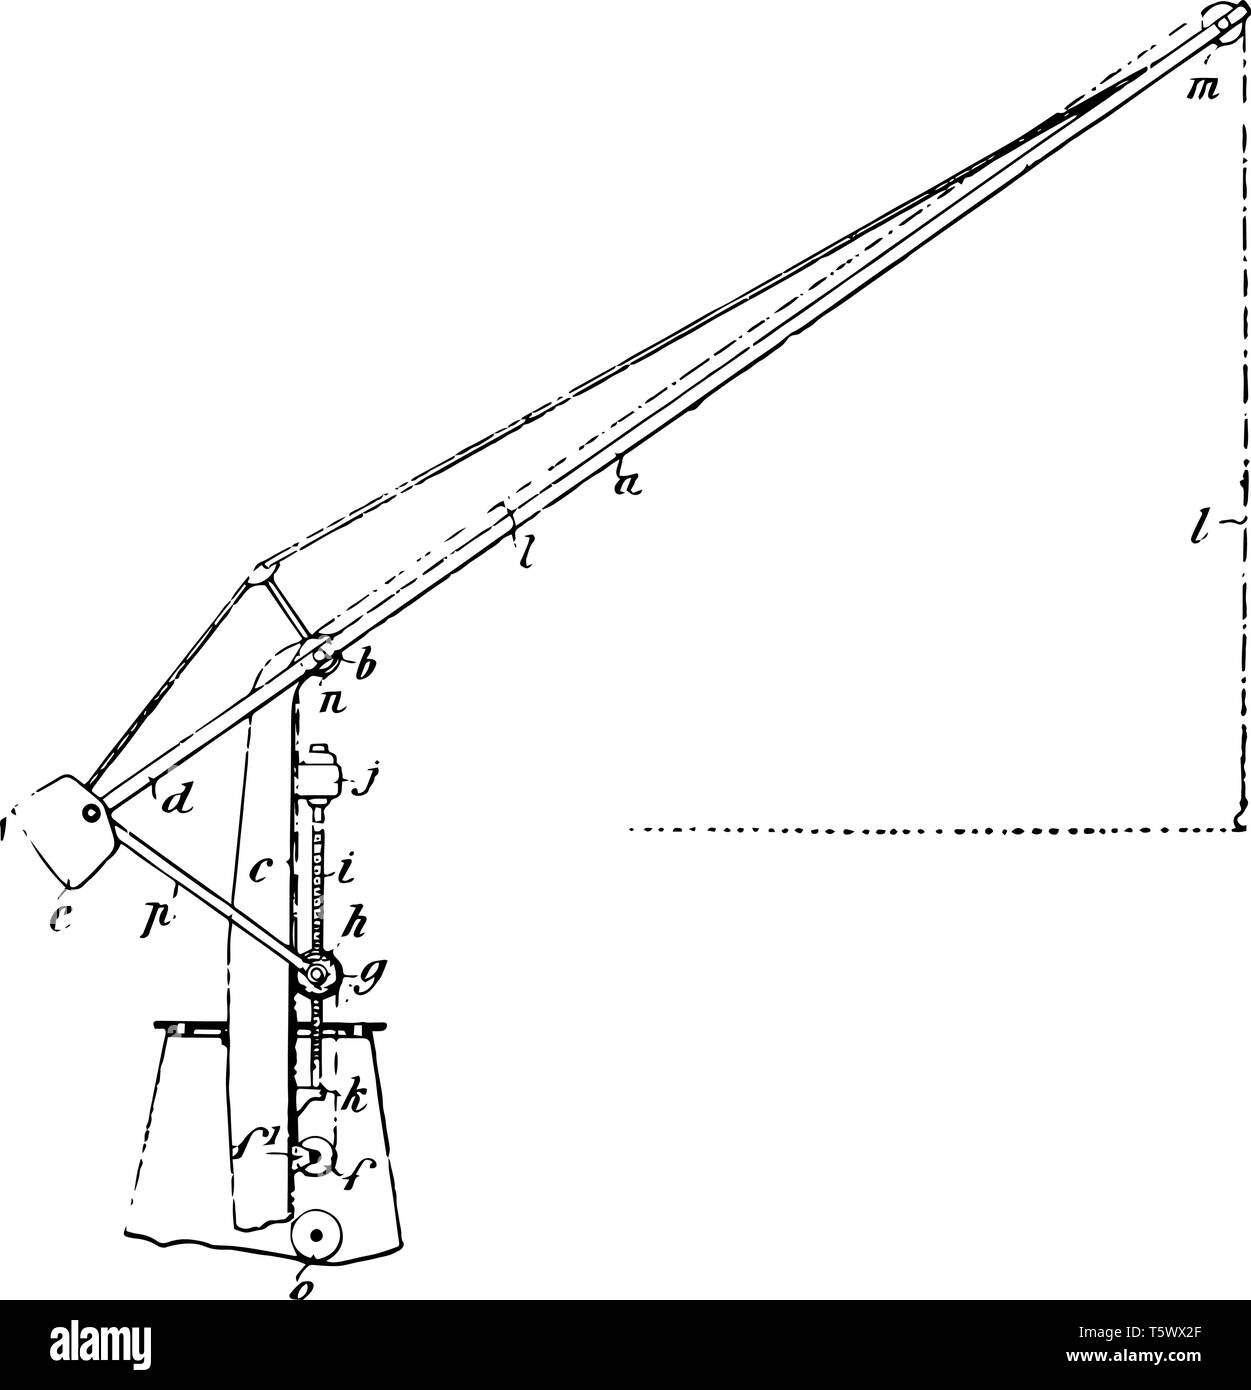 hight resolution of naval crane a lifting machine generally equipped also called a wire rope drum used both to lift and lower materials move them horizontally vintage lin